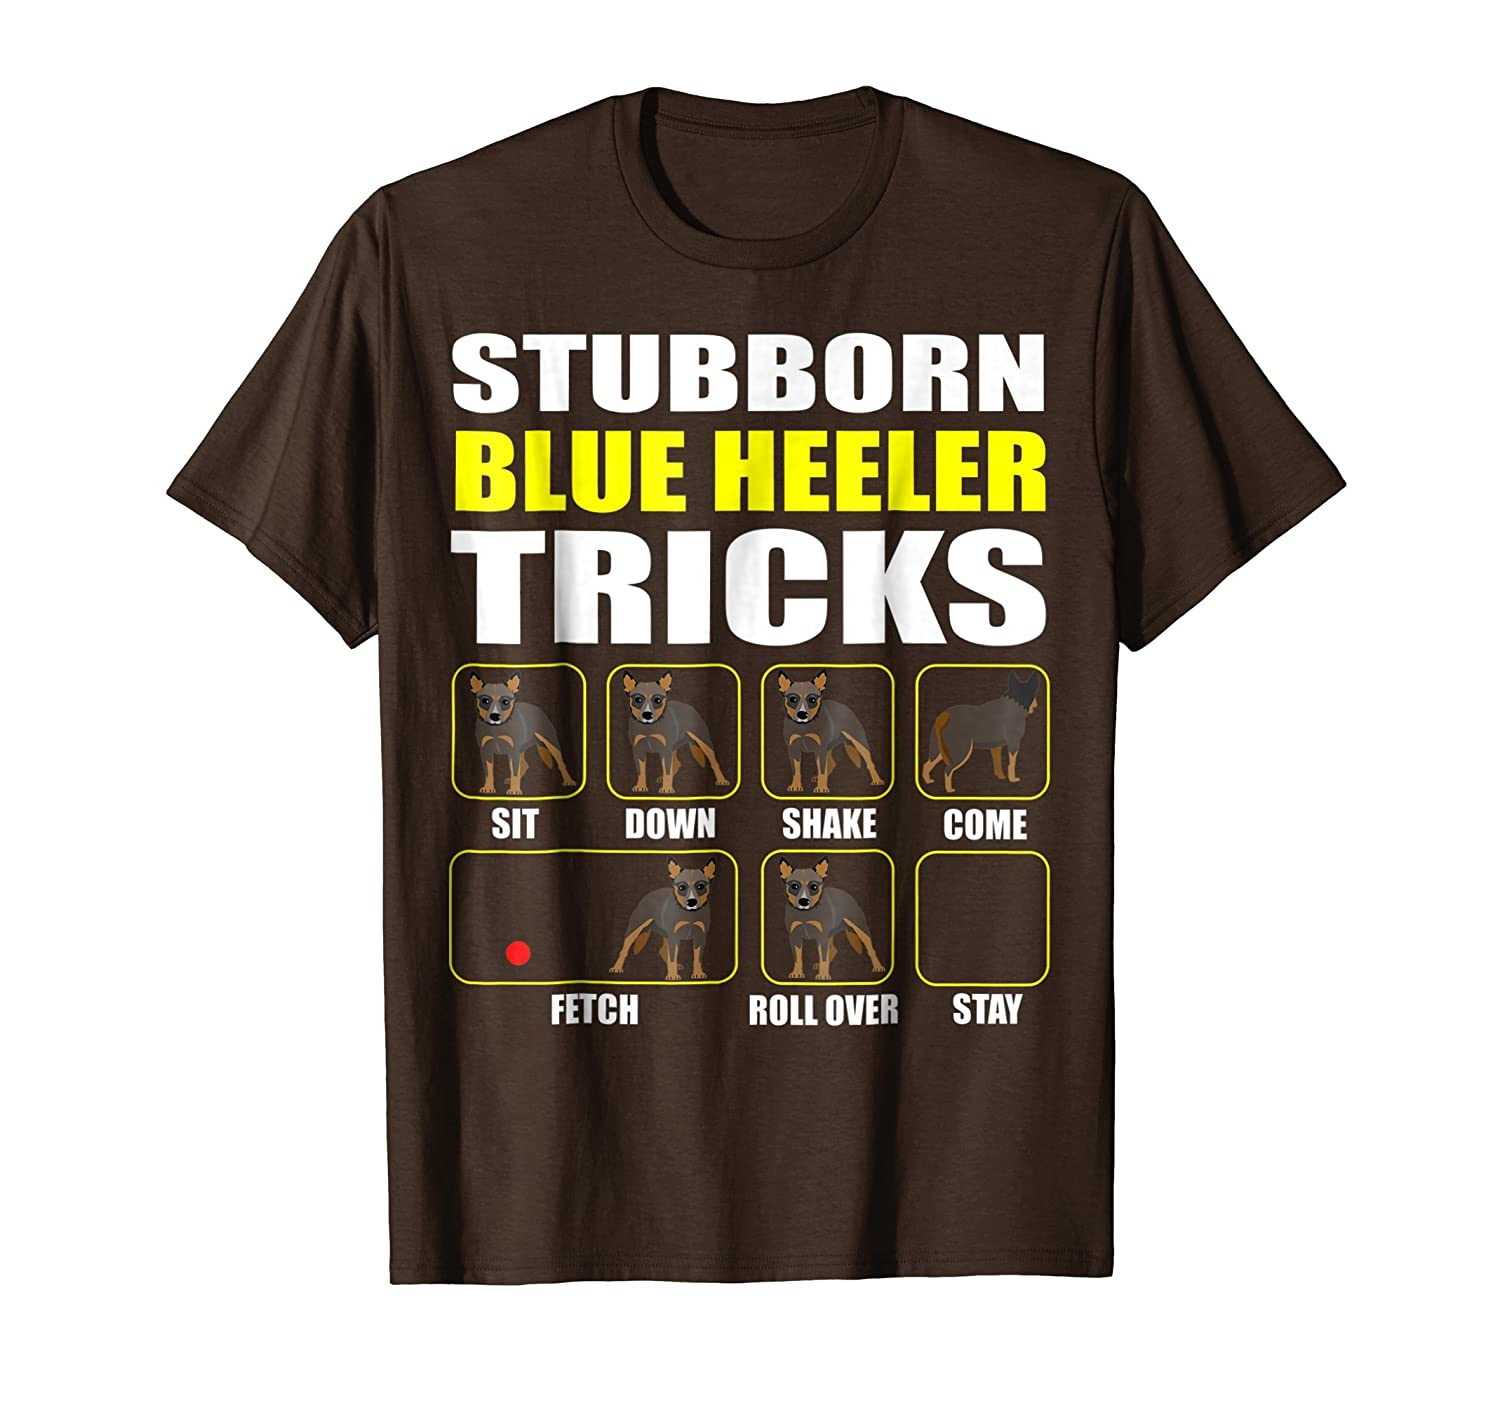 Blue Heeler | Stubborn Blue Heeler Tricks | Funny Shirt-mt